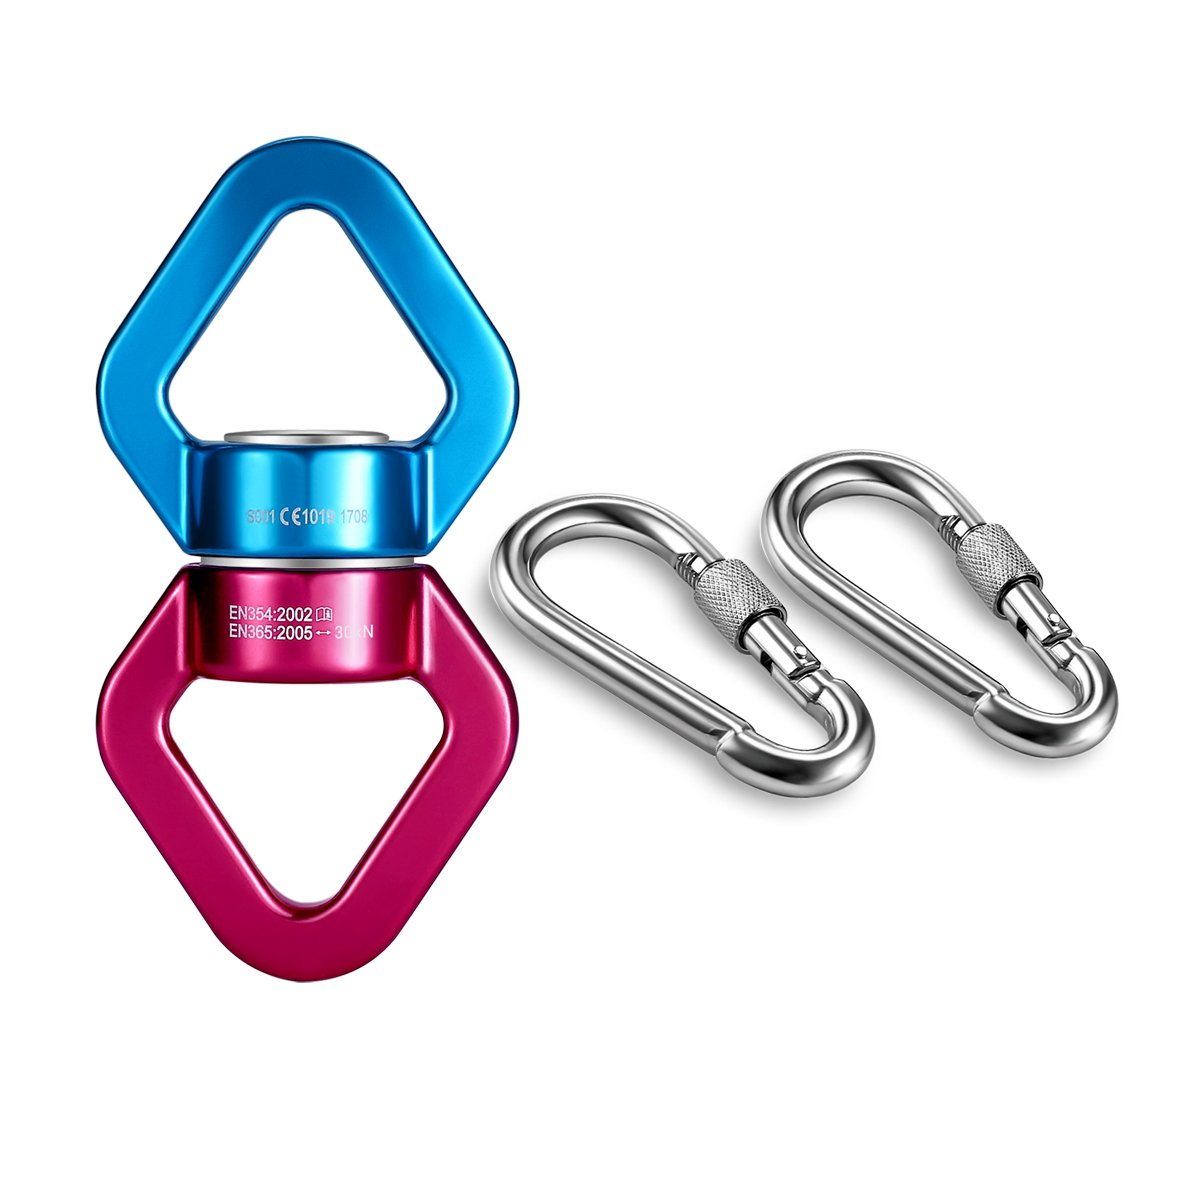 mdairc Safety Rotational Device, Aluminum Alloy Double-Ball Bearing Swivel, Holds Up 8500+ Lbs, Minimum Breaking Strength 40 kN, Spins & Rotates 360° For Smooth Rope Climbing, Hiking & Exercise